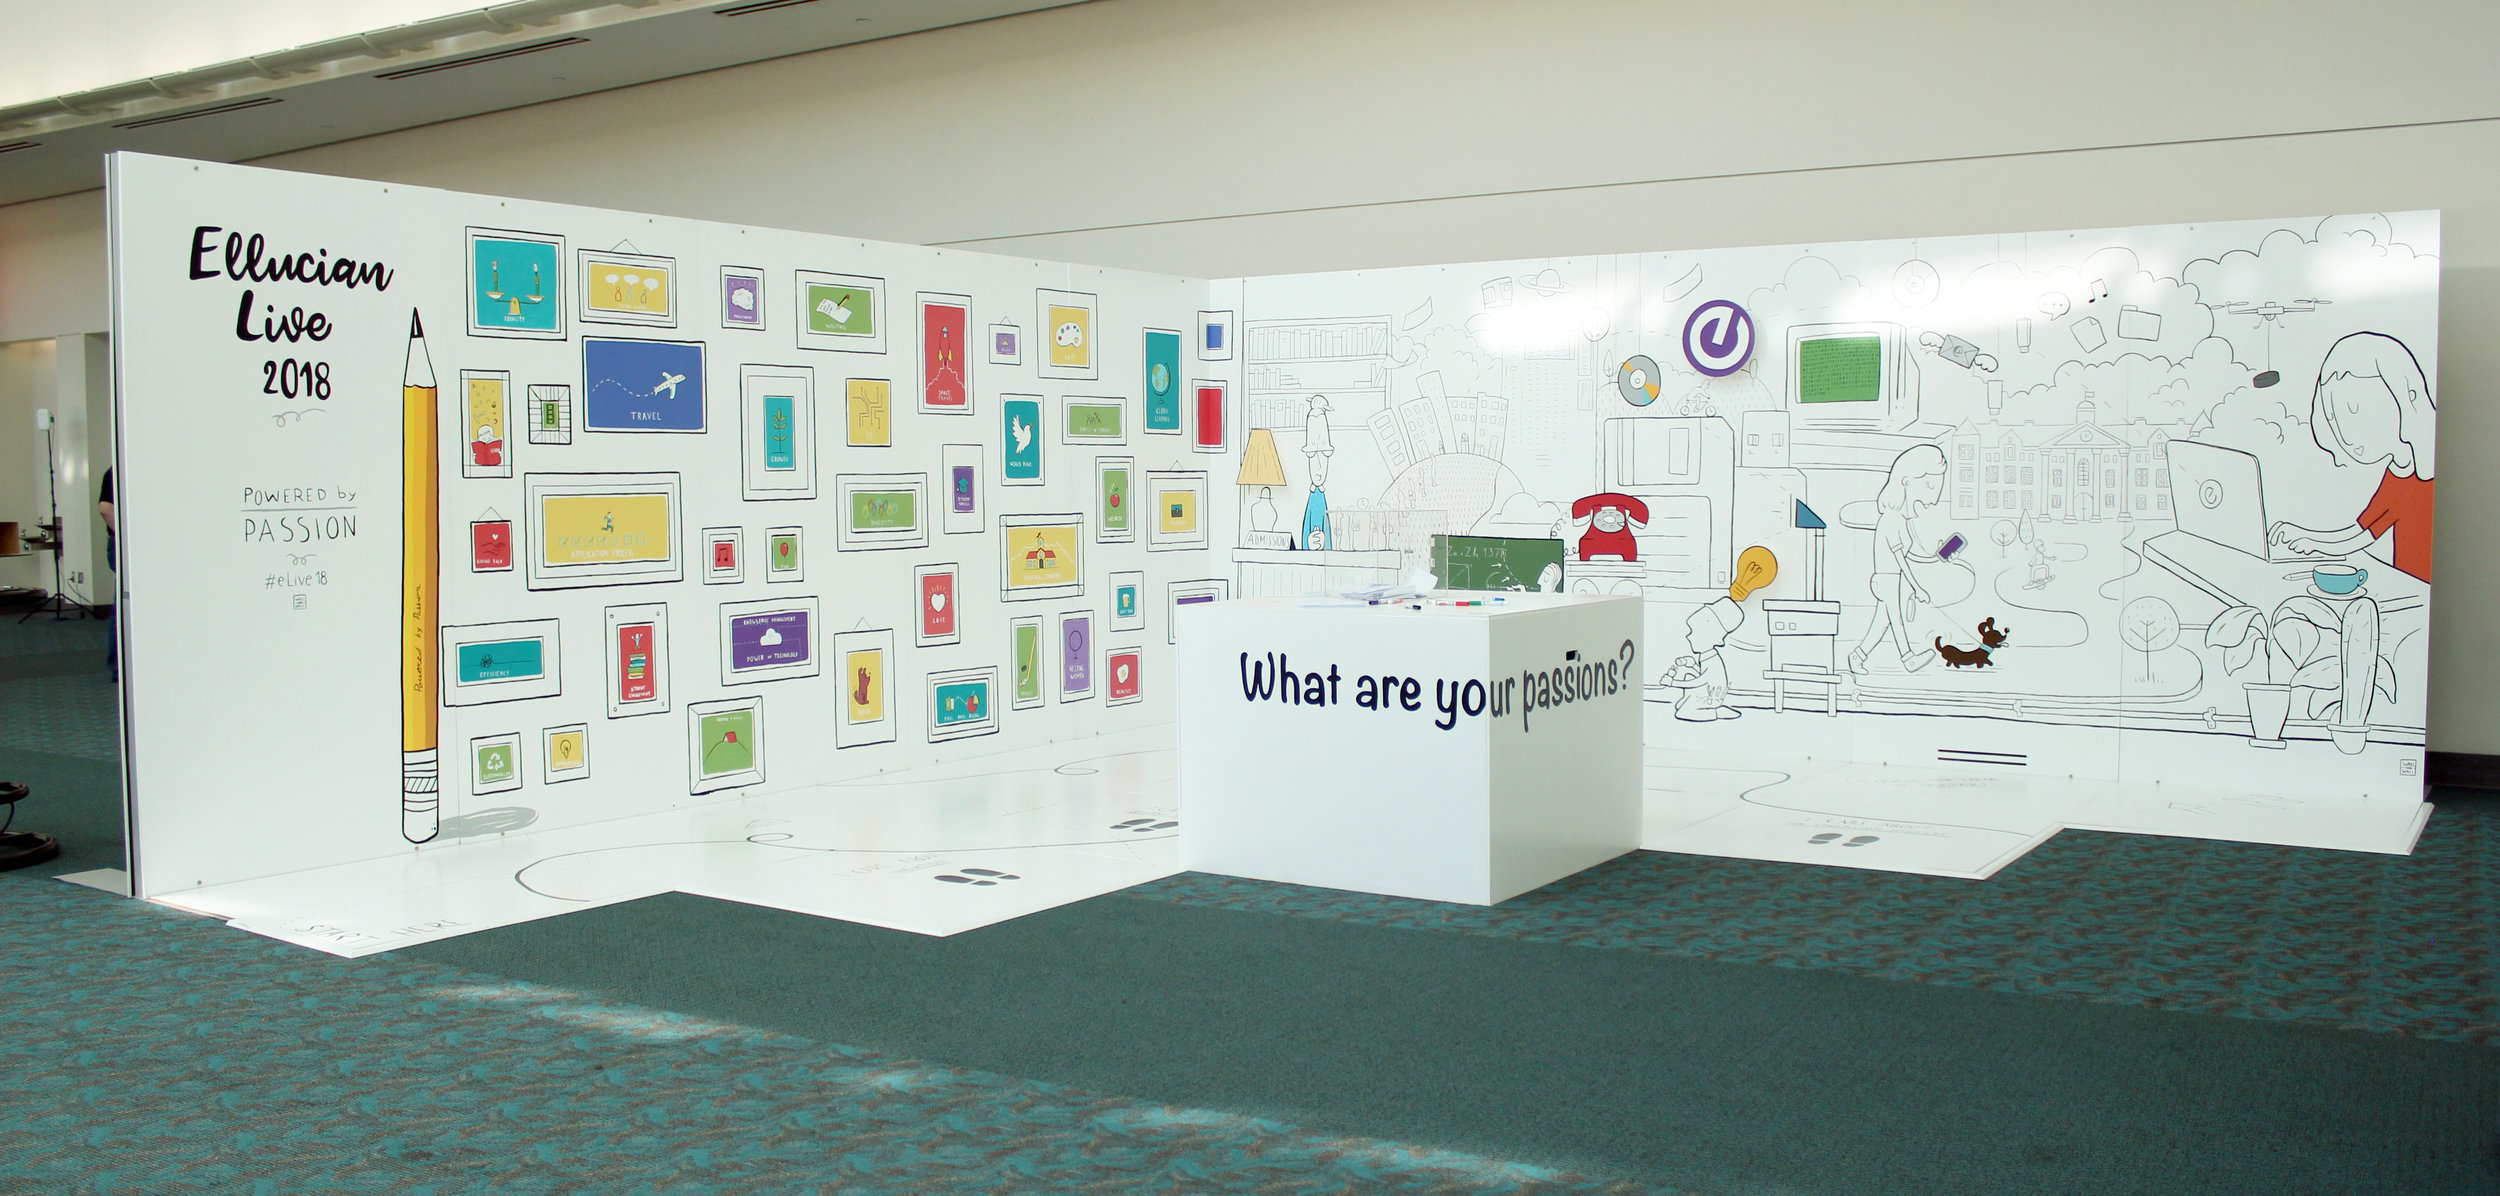 Event-mural-interactive-san-diego-ellucian-wall-and-wall-mural-company_008.jpeg